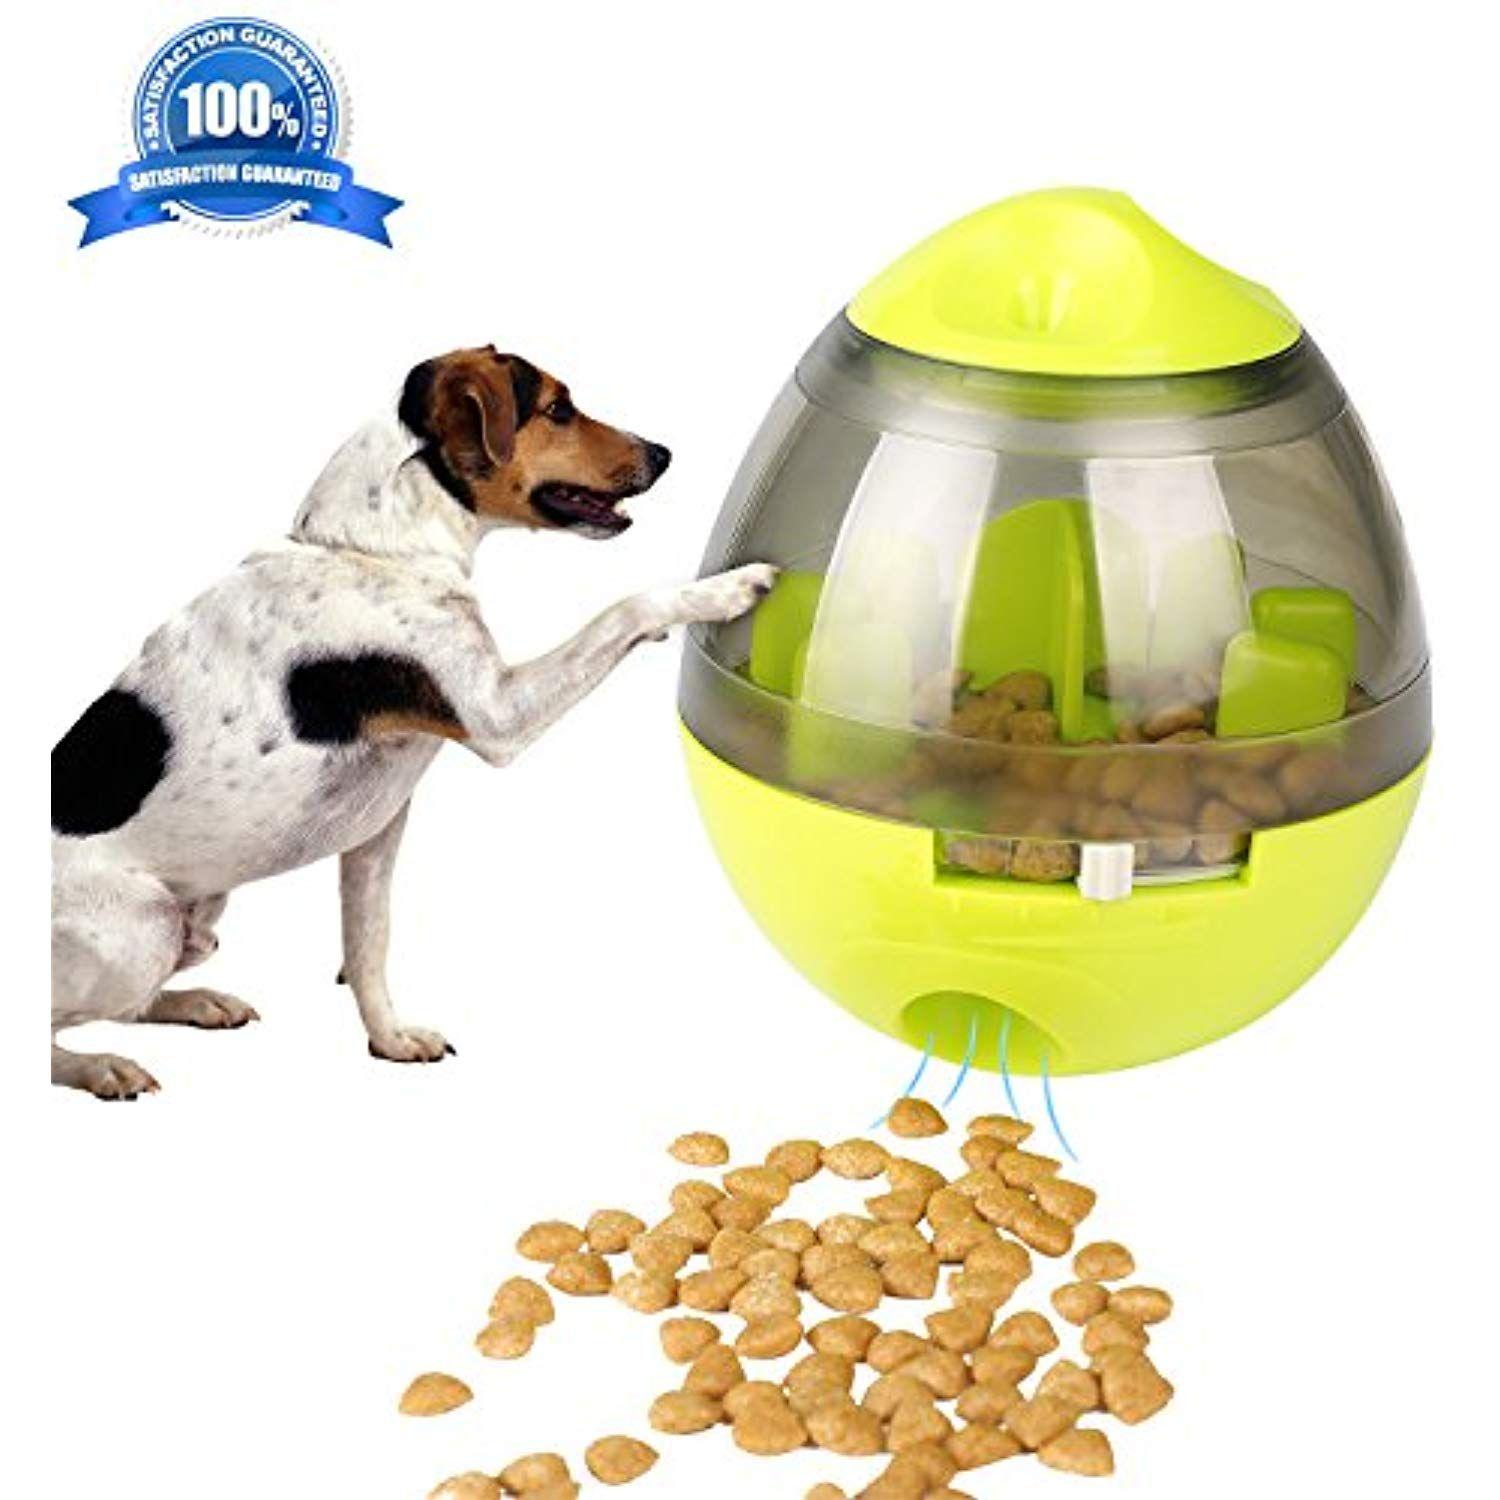 Airsspu Dog Toy Treat Ball Interactive Food Dispenser Ball Toy